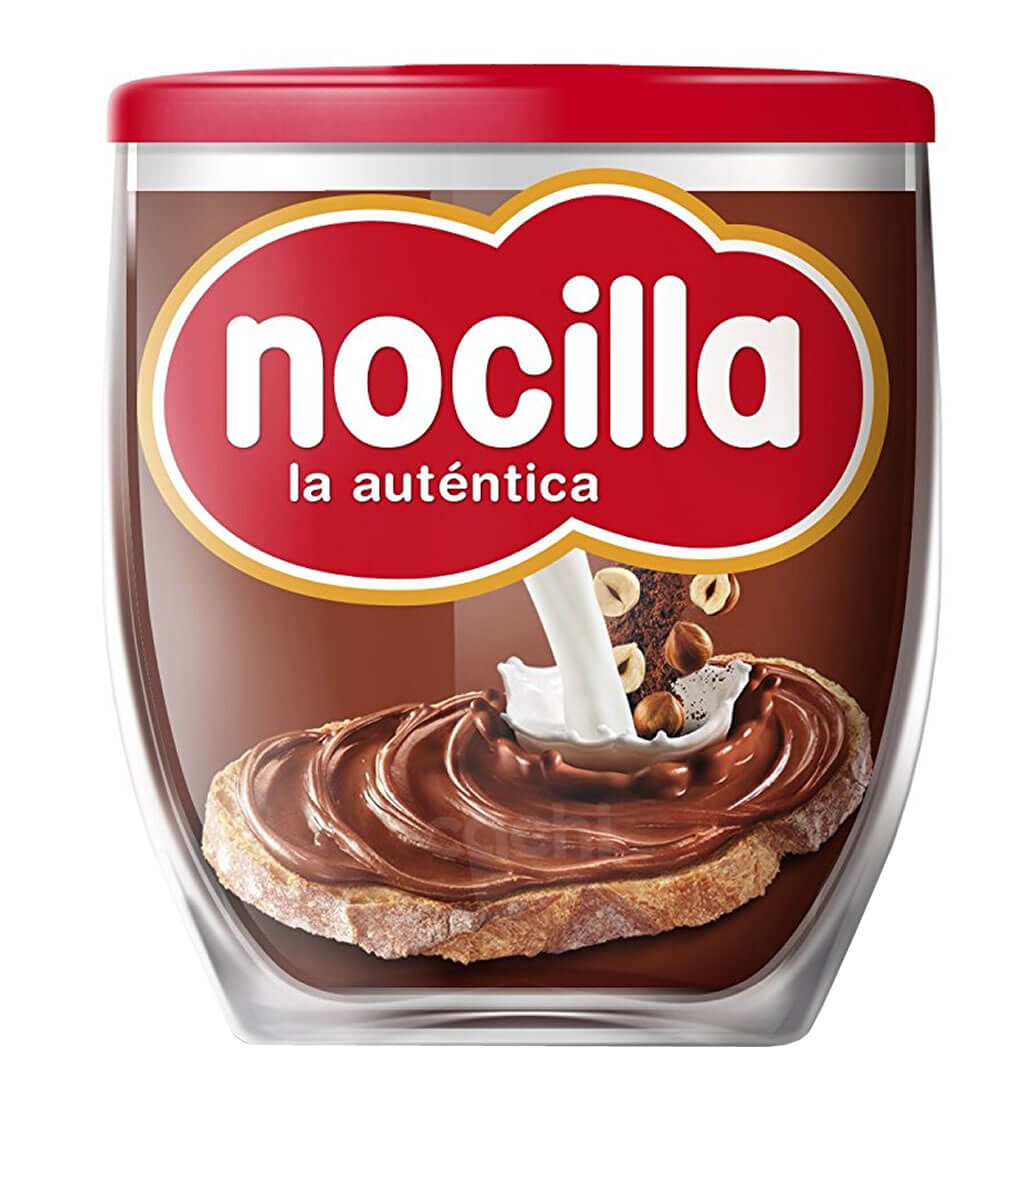 Nocilla Pasta De Avellanas Con Chocolate Tipo Nutella 200gr Hazelnut Spread With Cocoa Encontralo En Cachi